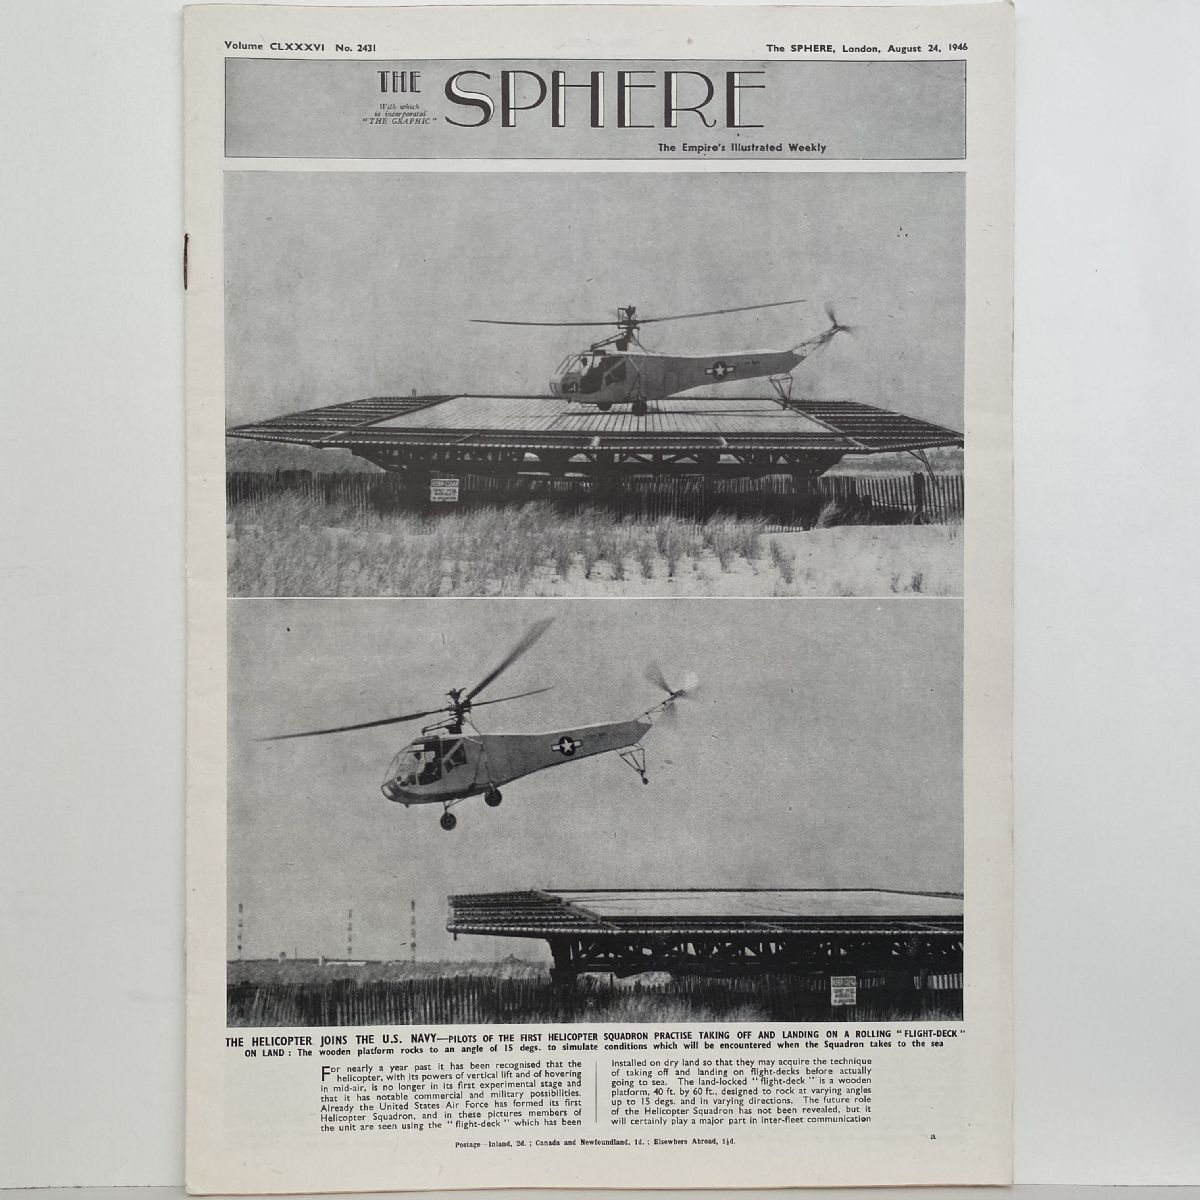 THE SPHERE The Empire's Illustrated Weekly. August 24, 1946. No. 2431